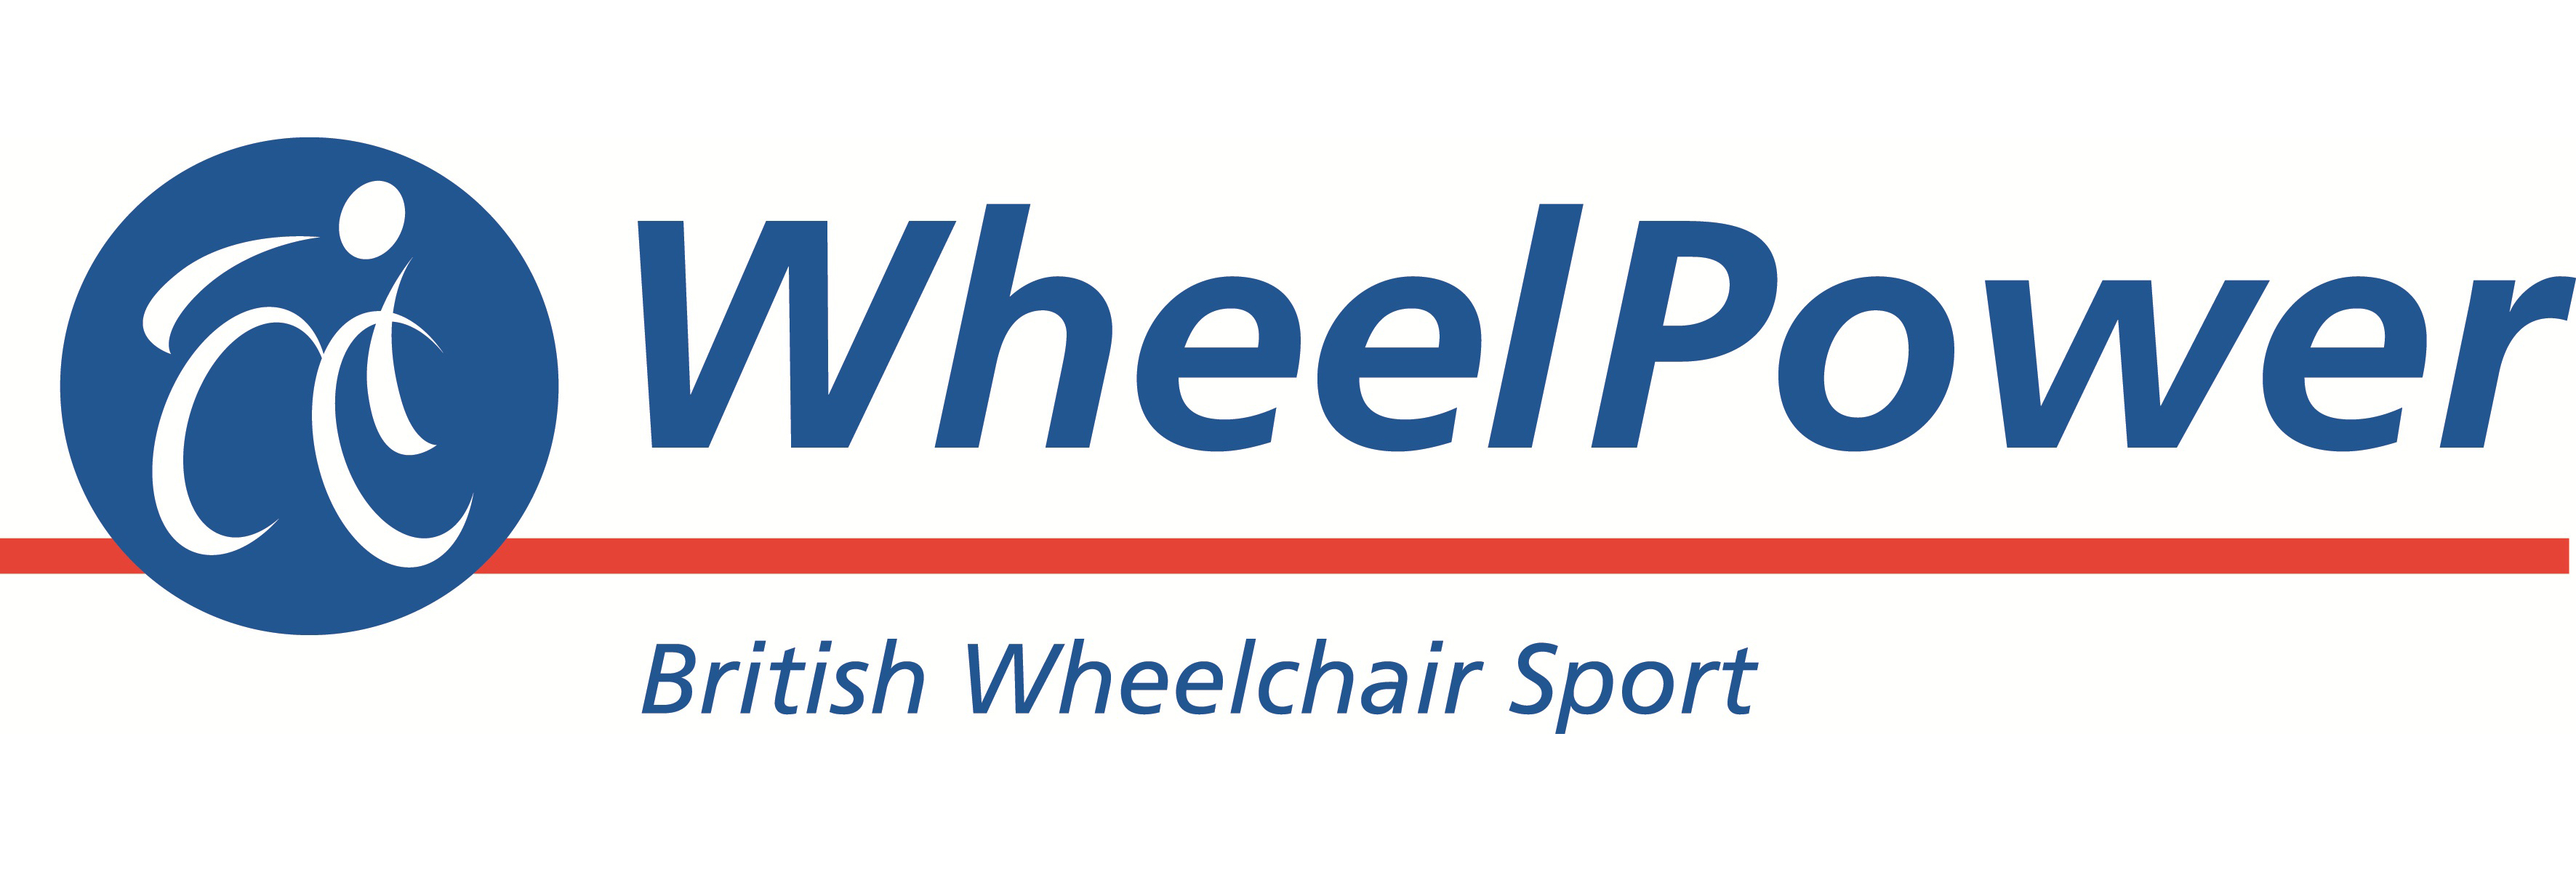 WheelPower logo with website link